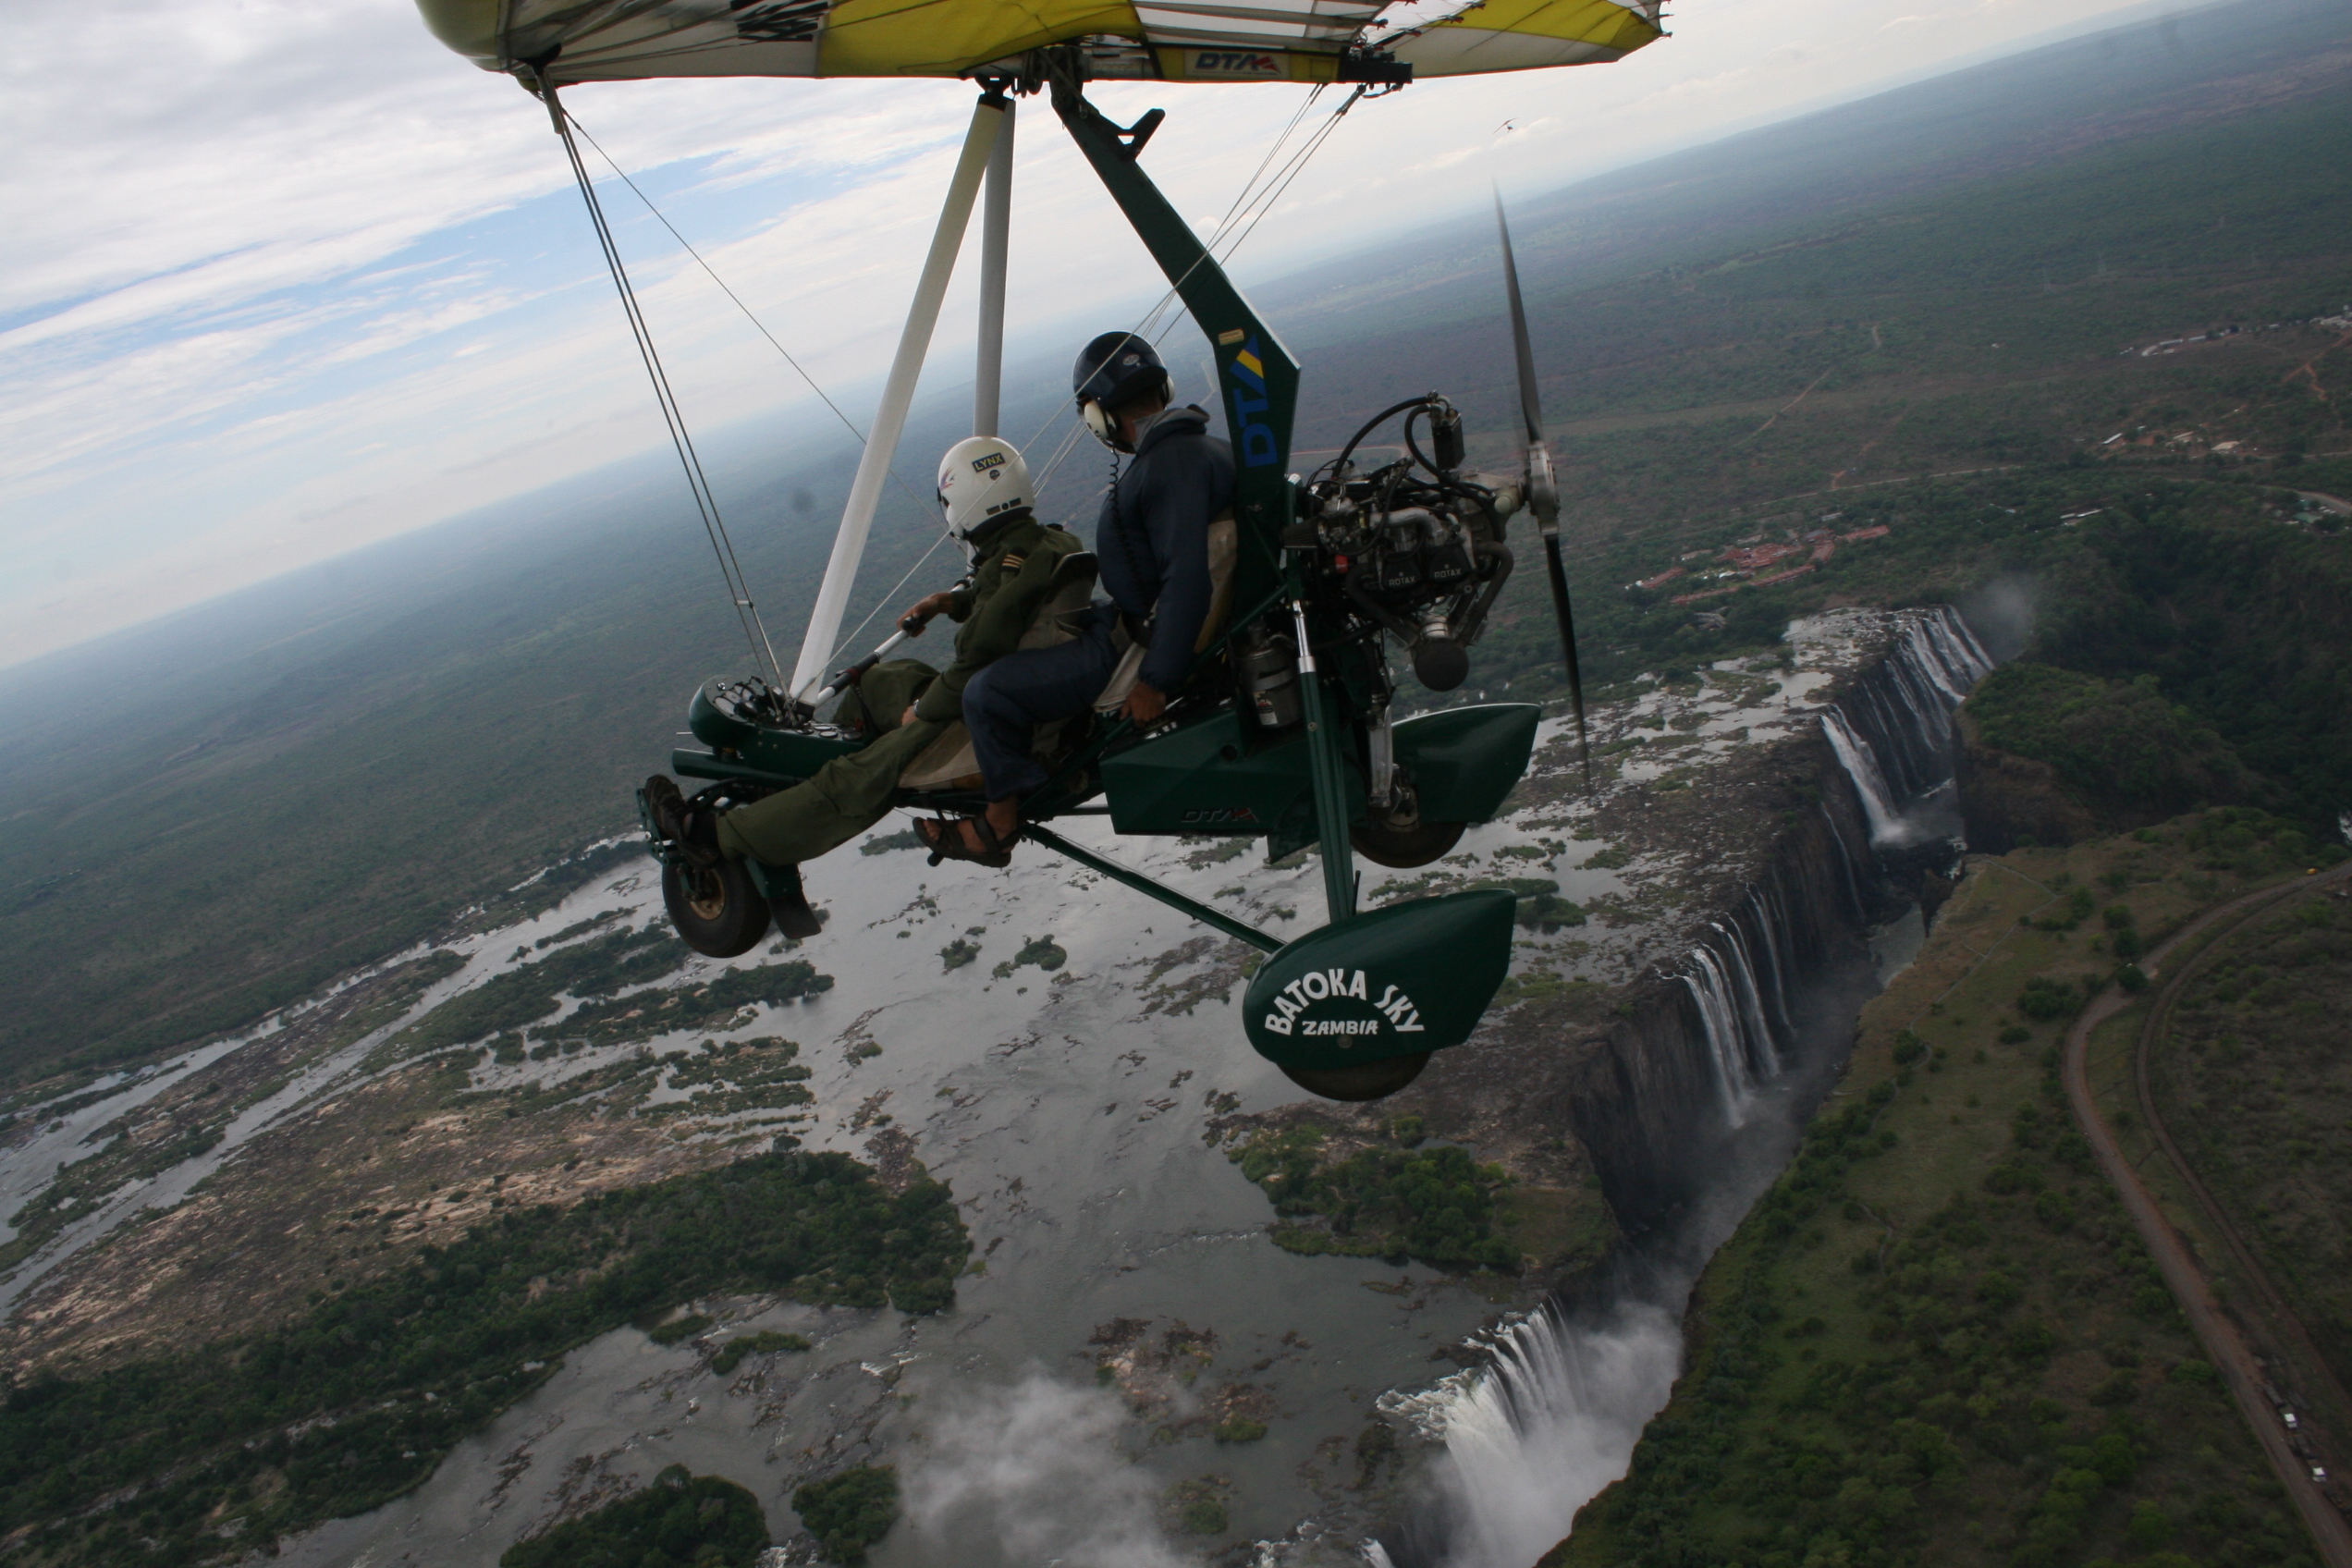 Glyn in microlight over Vic Falls